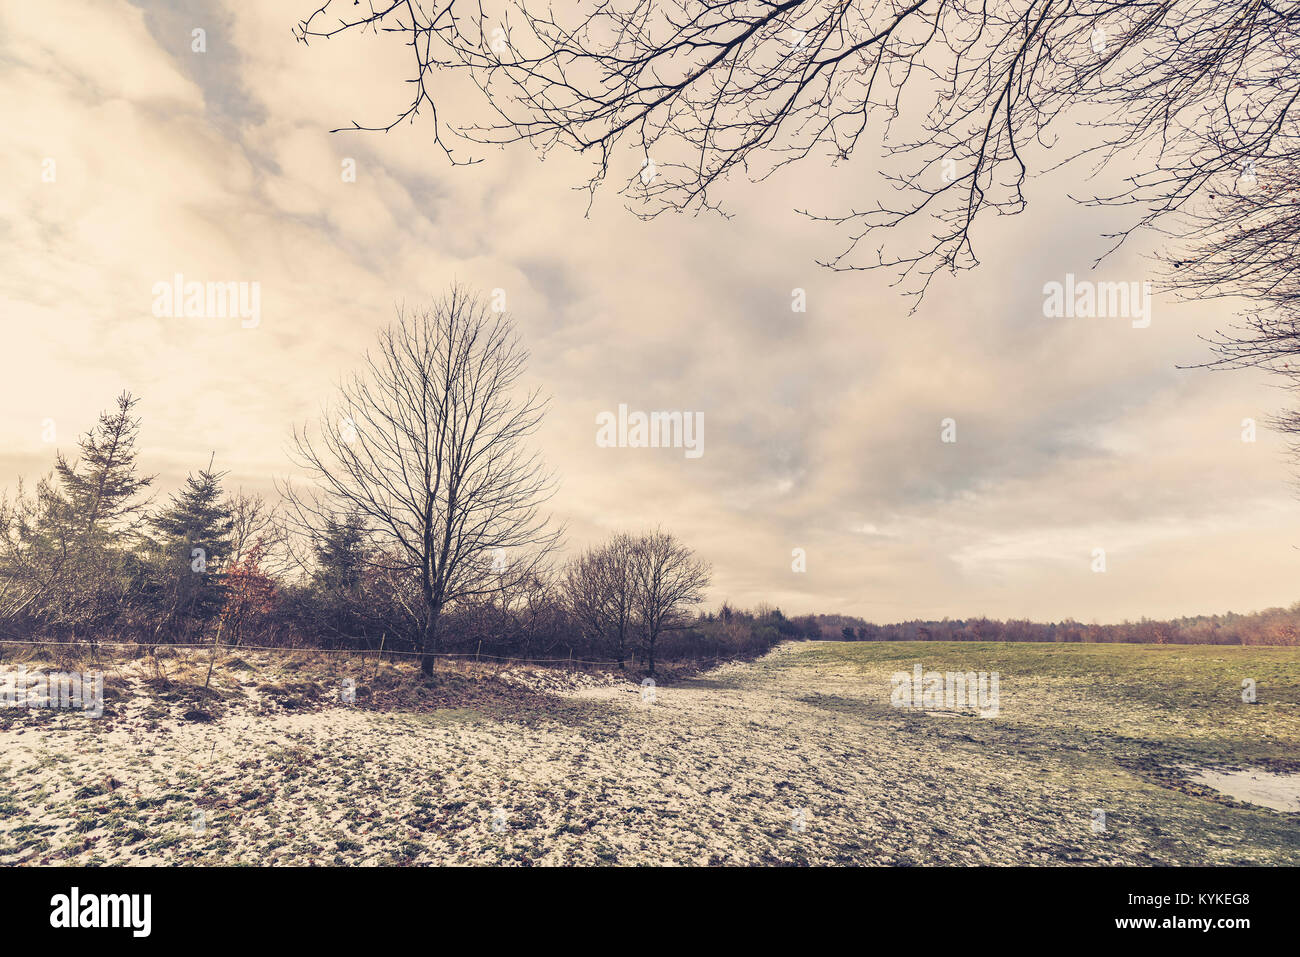 Rural field in the winter with barenaked trees and new fallen snow - Stock Image